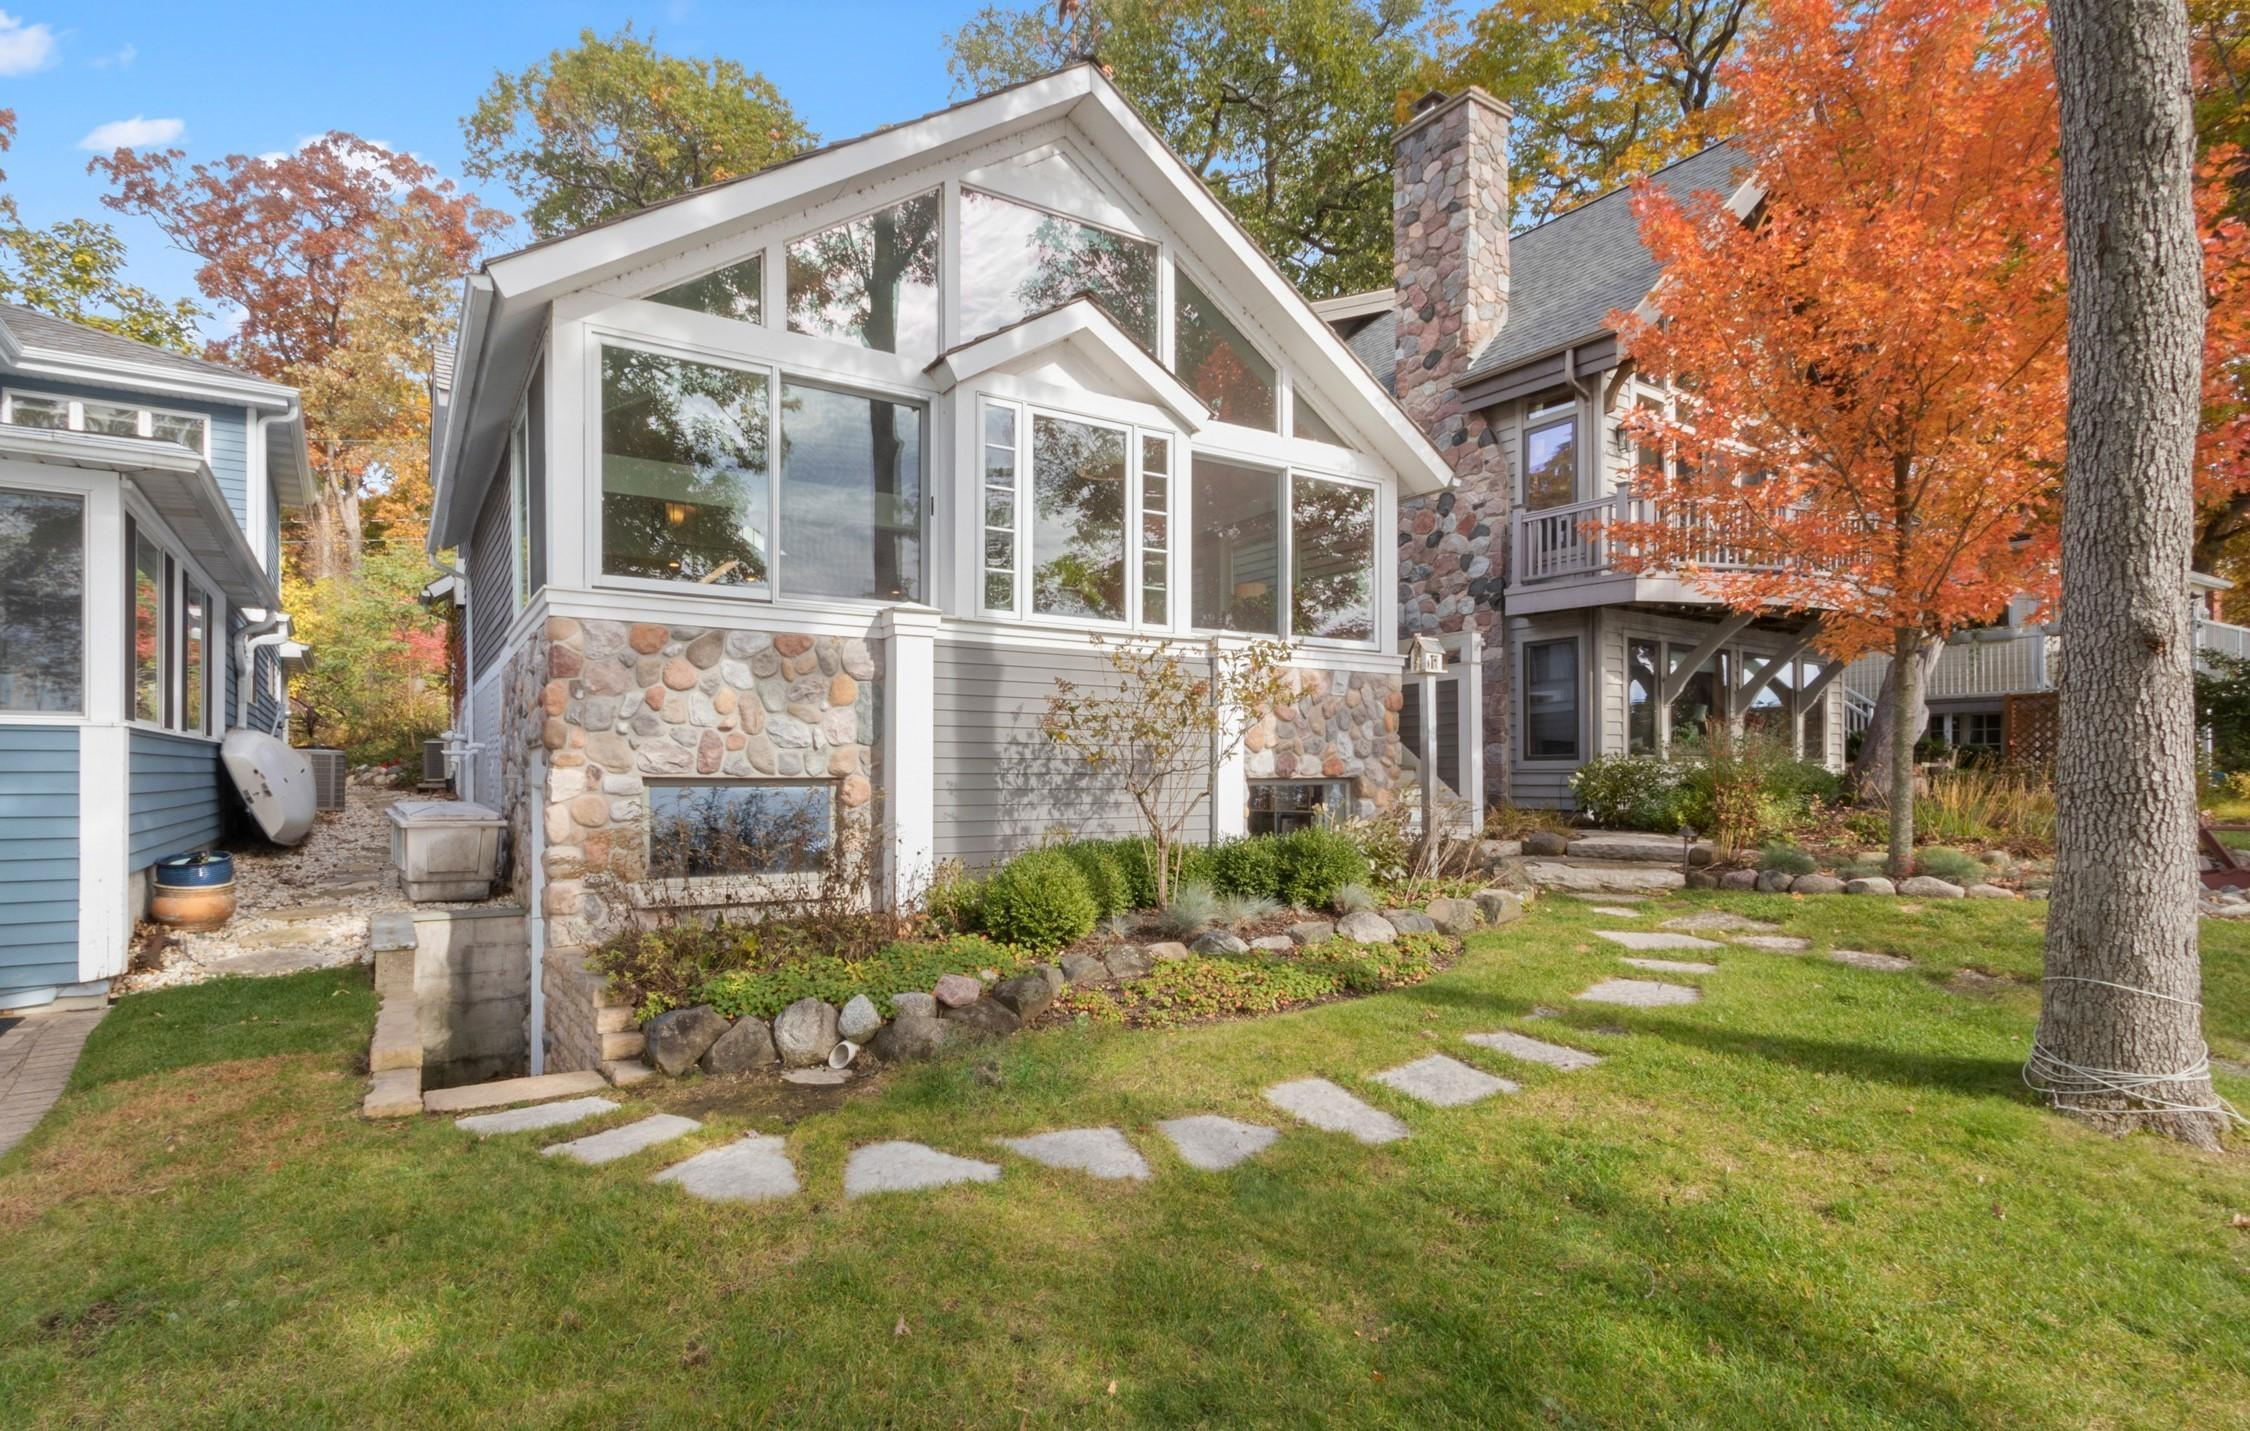 Photo of 3 Dartmouth Rd, Williams Bay, WI 53191